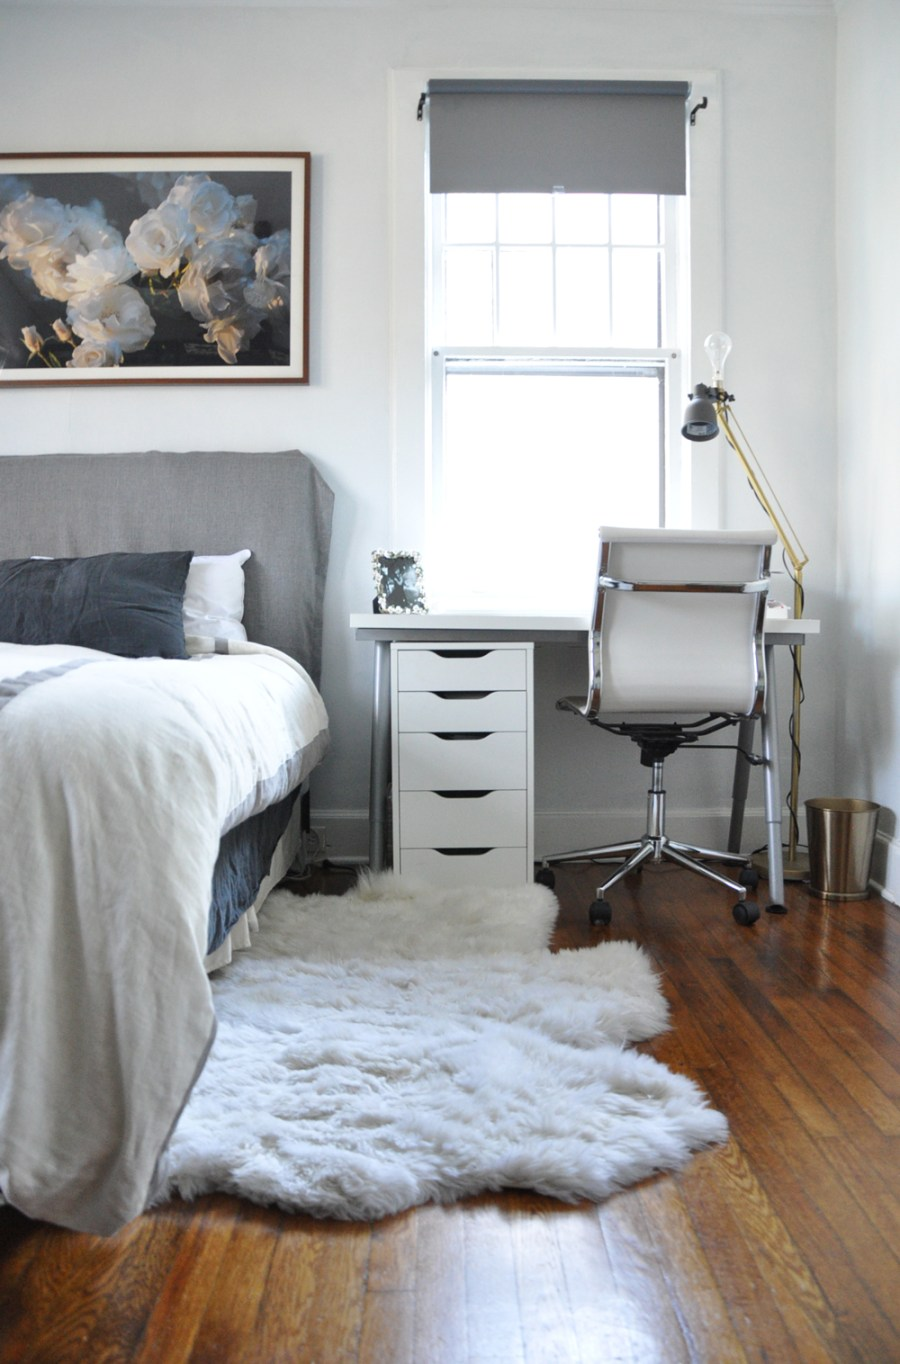 05-life-changing-magic-of-tidying-up---bedroom-after---white-and-grey---scandinavian-style